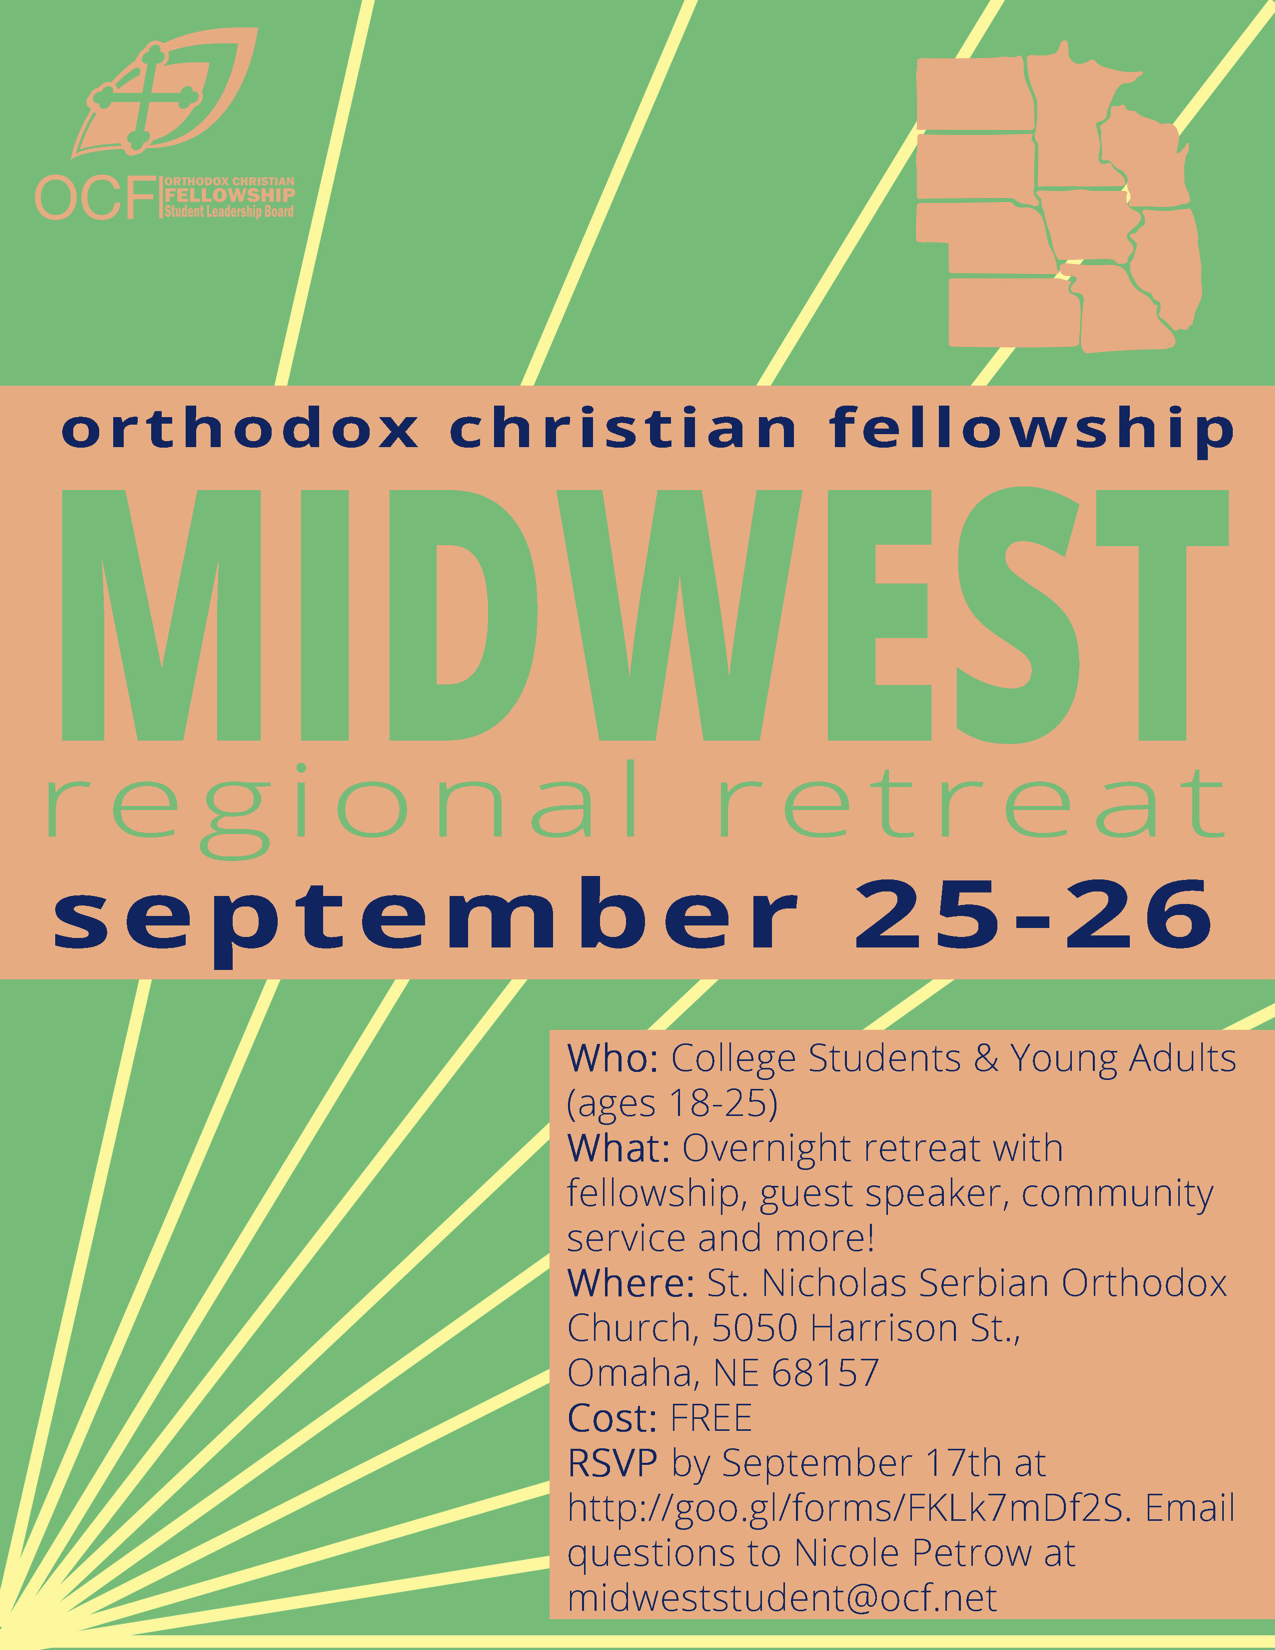 Fall 2015 Midwest Regional Retreat Preview